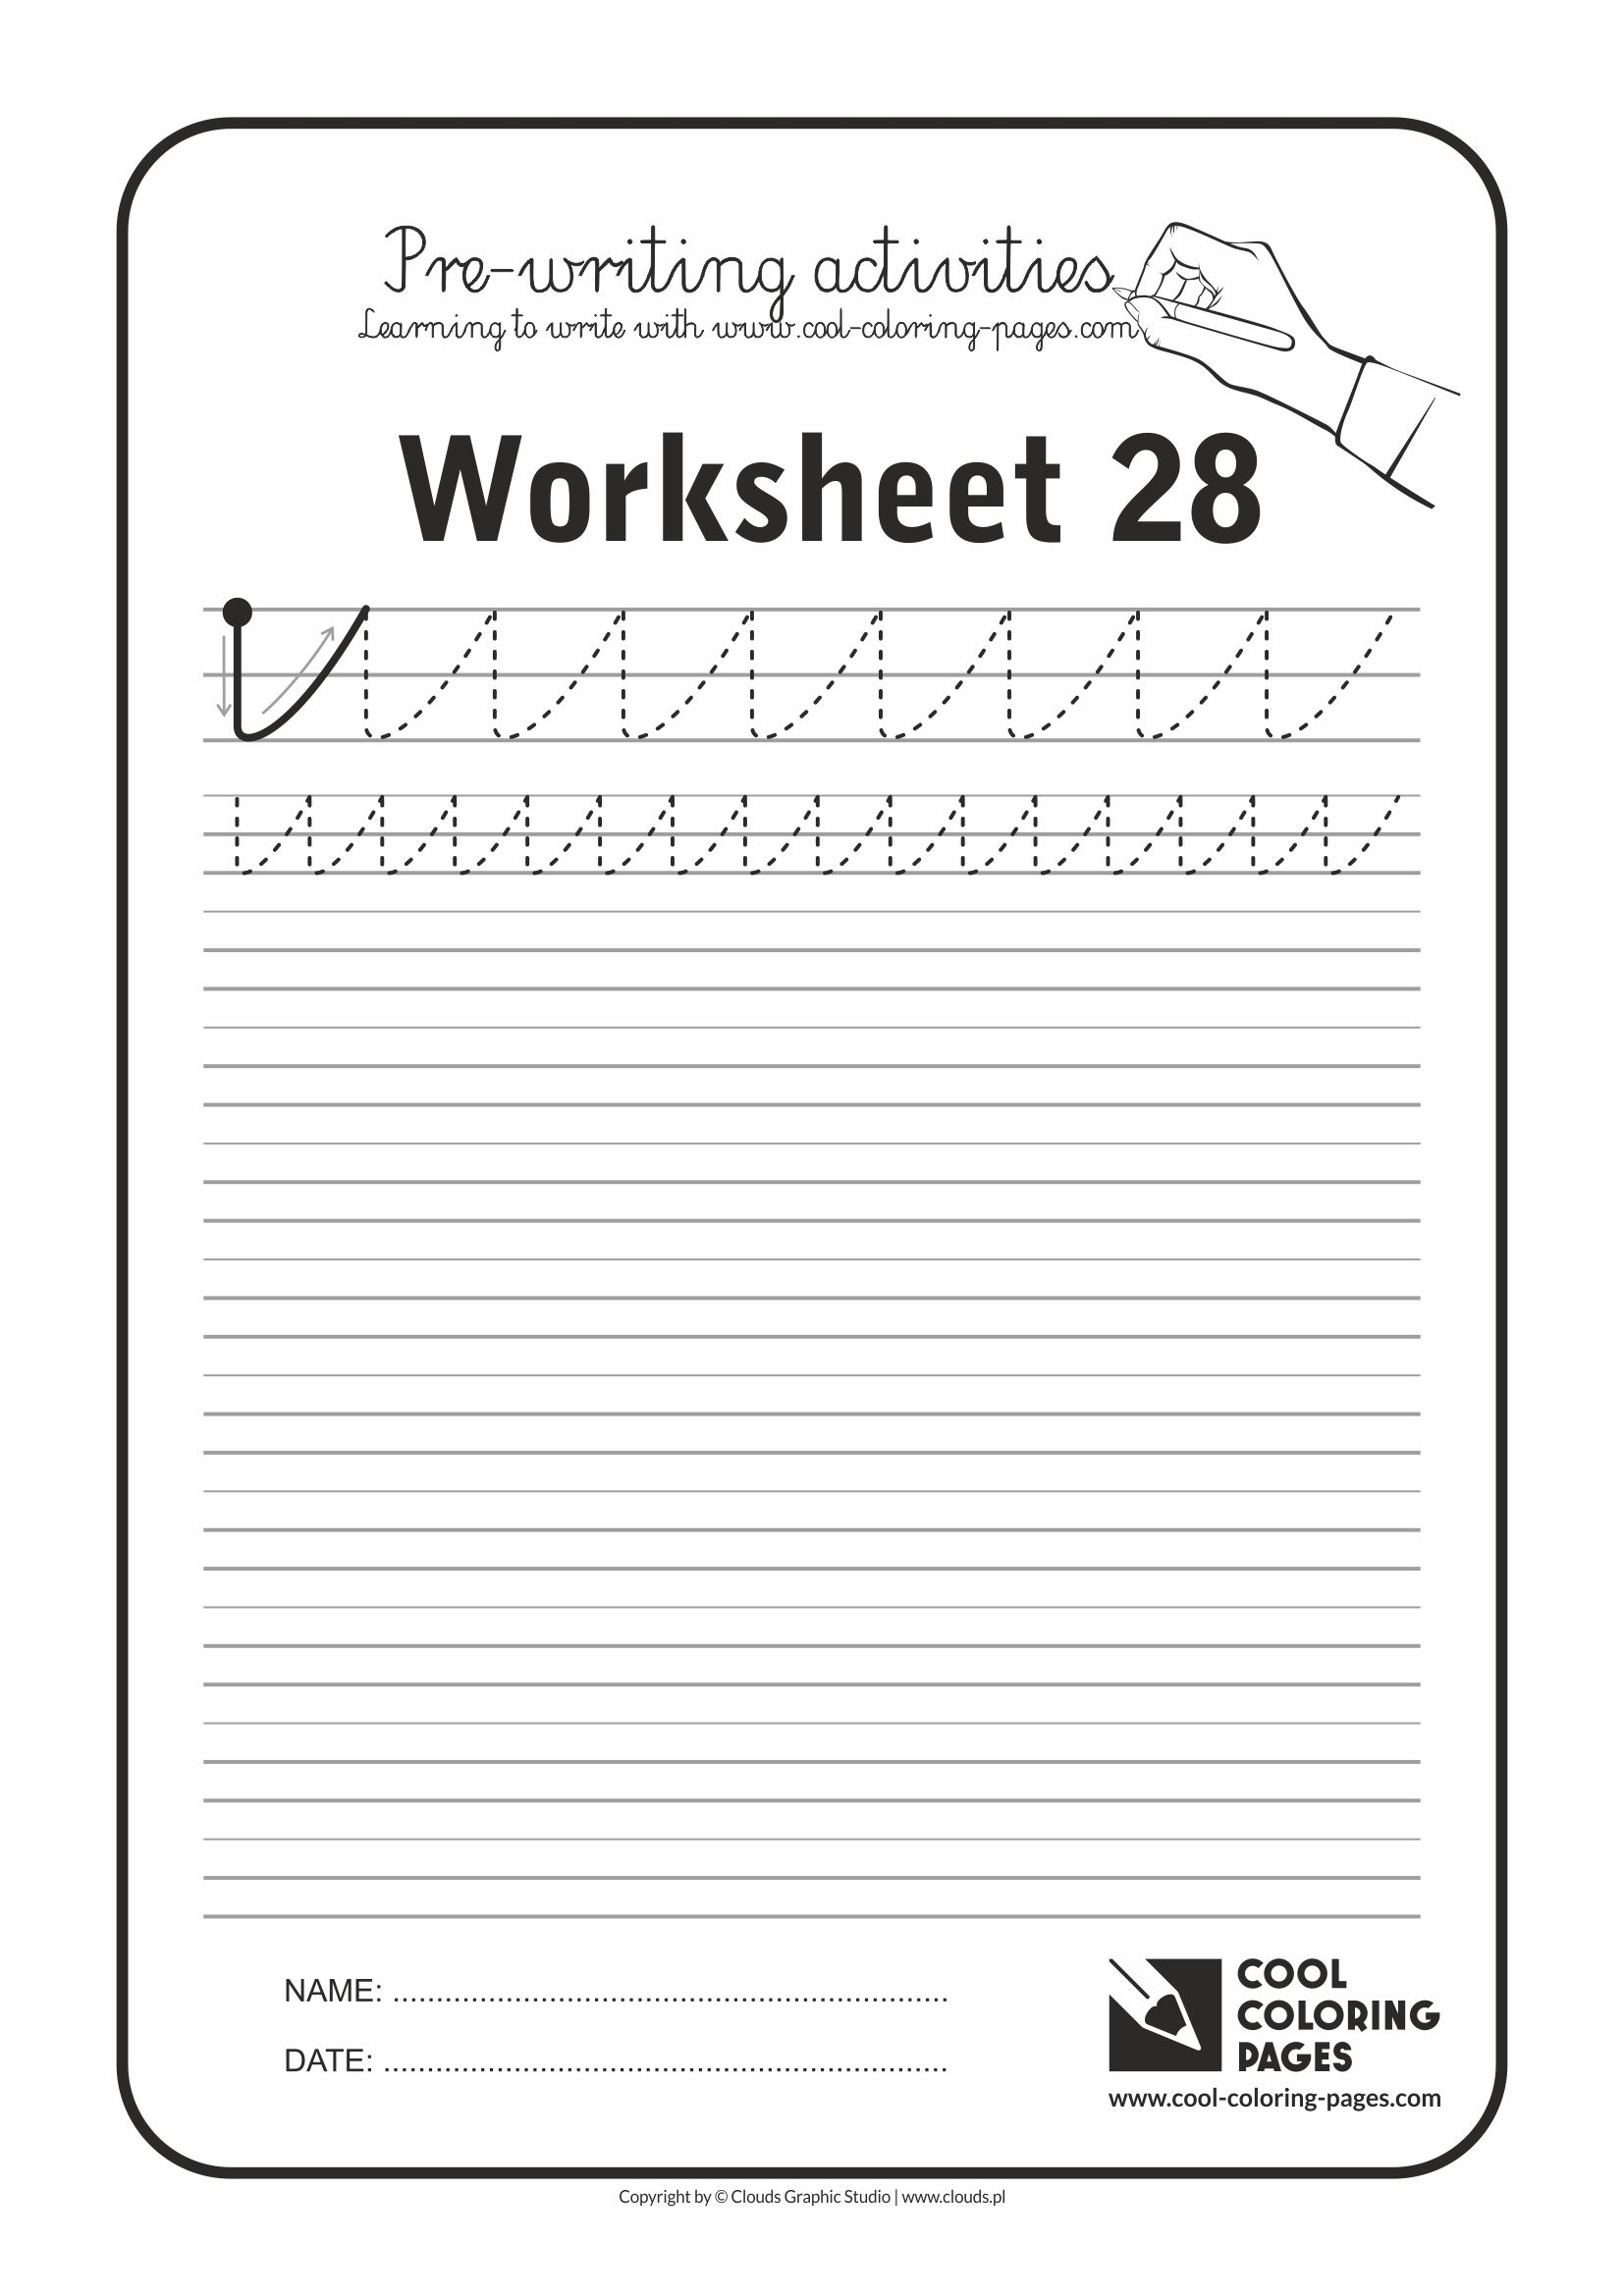 Cool Coloring Pages / Pre-writing activities / Worksheet no.28